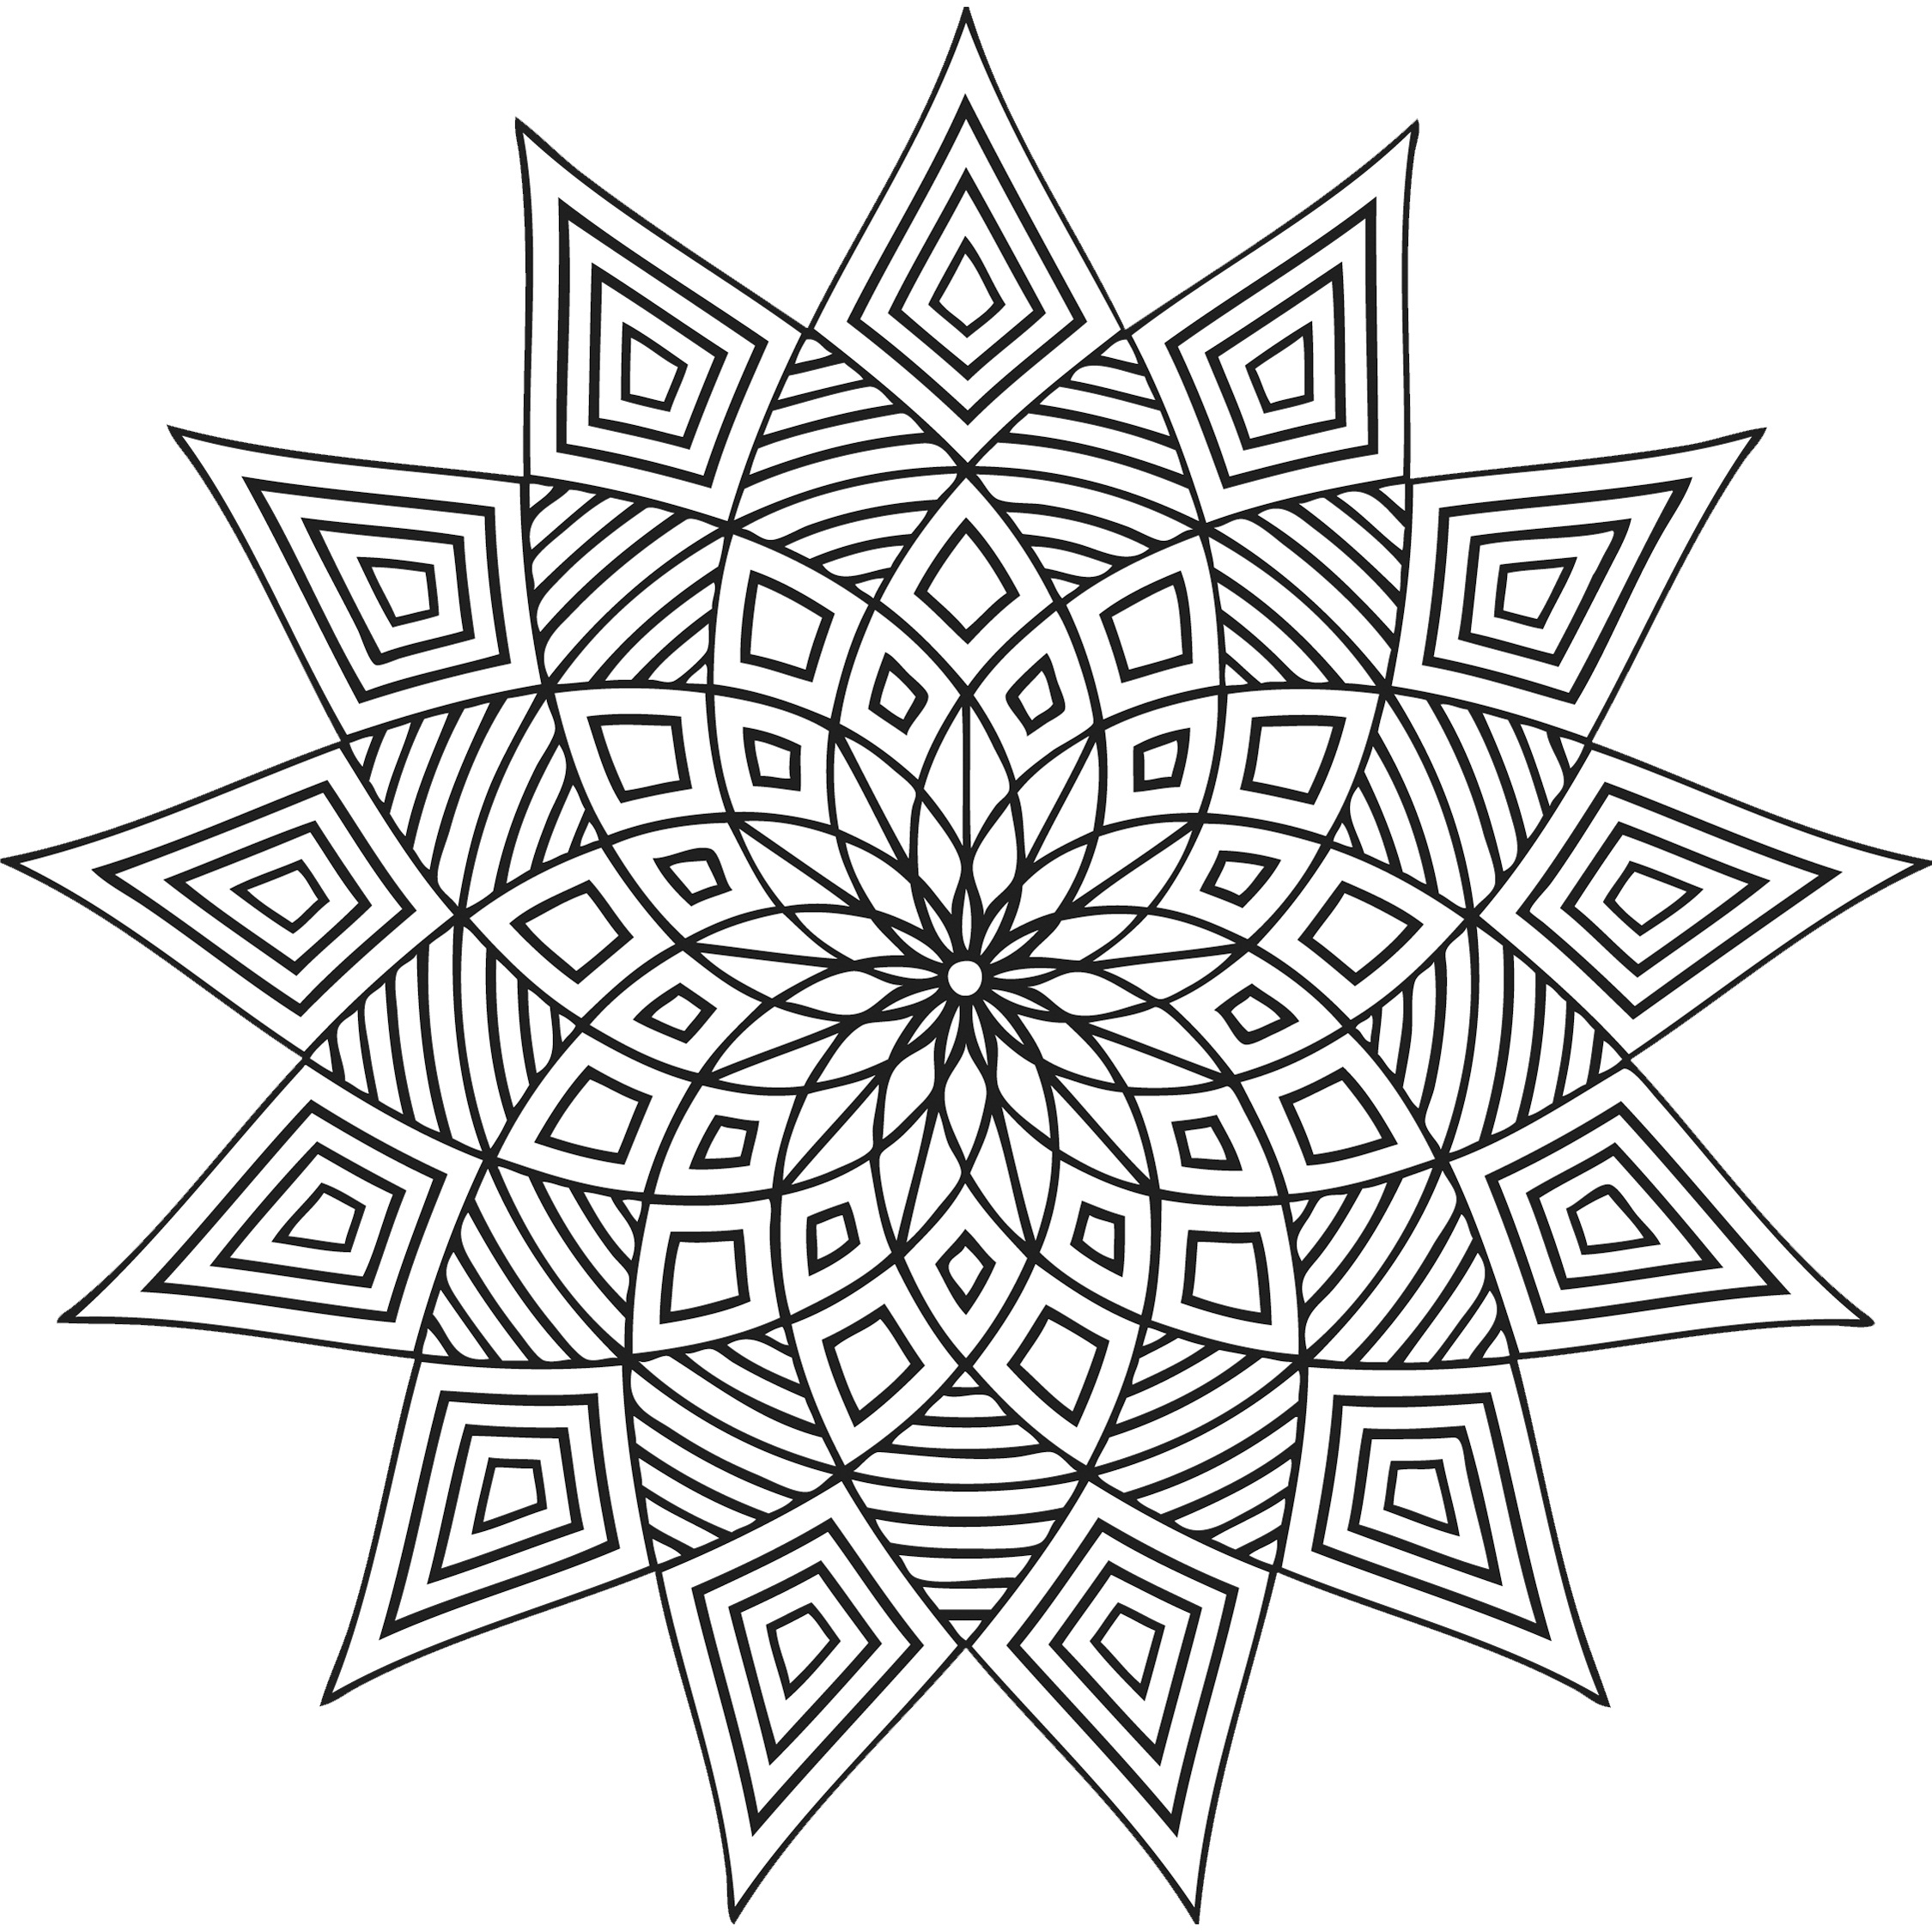 hard design coloring pages hard pokemon coloring pages at getdrawings free download coloring design hard pages